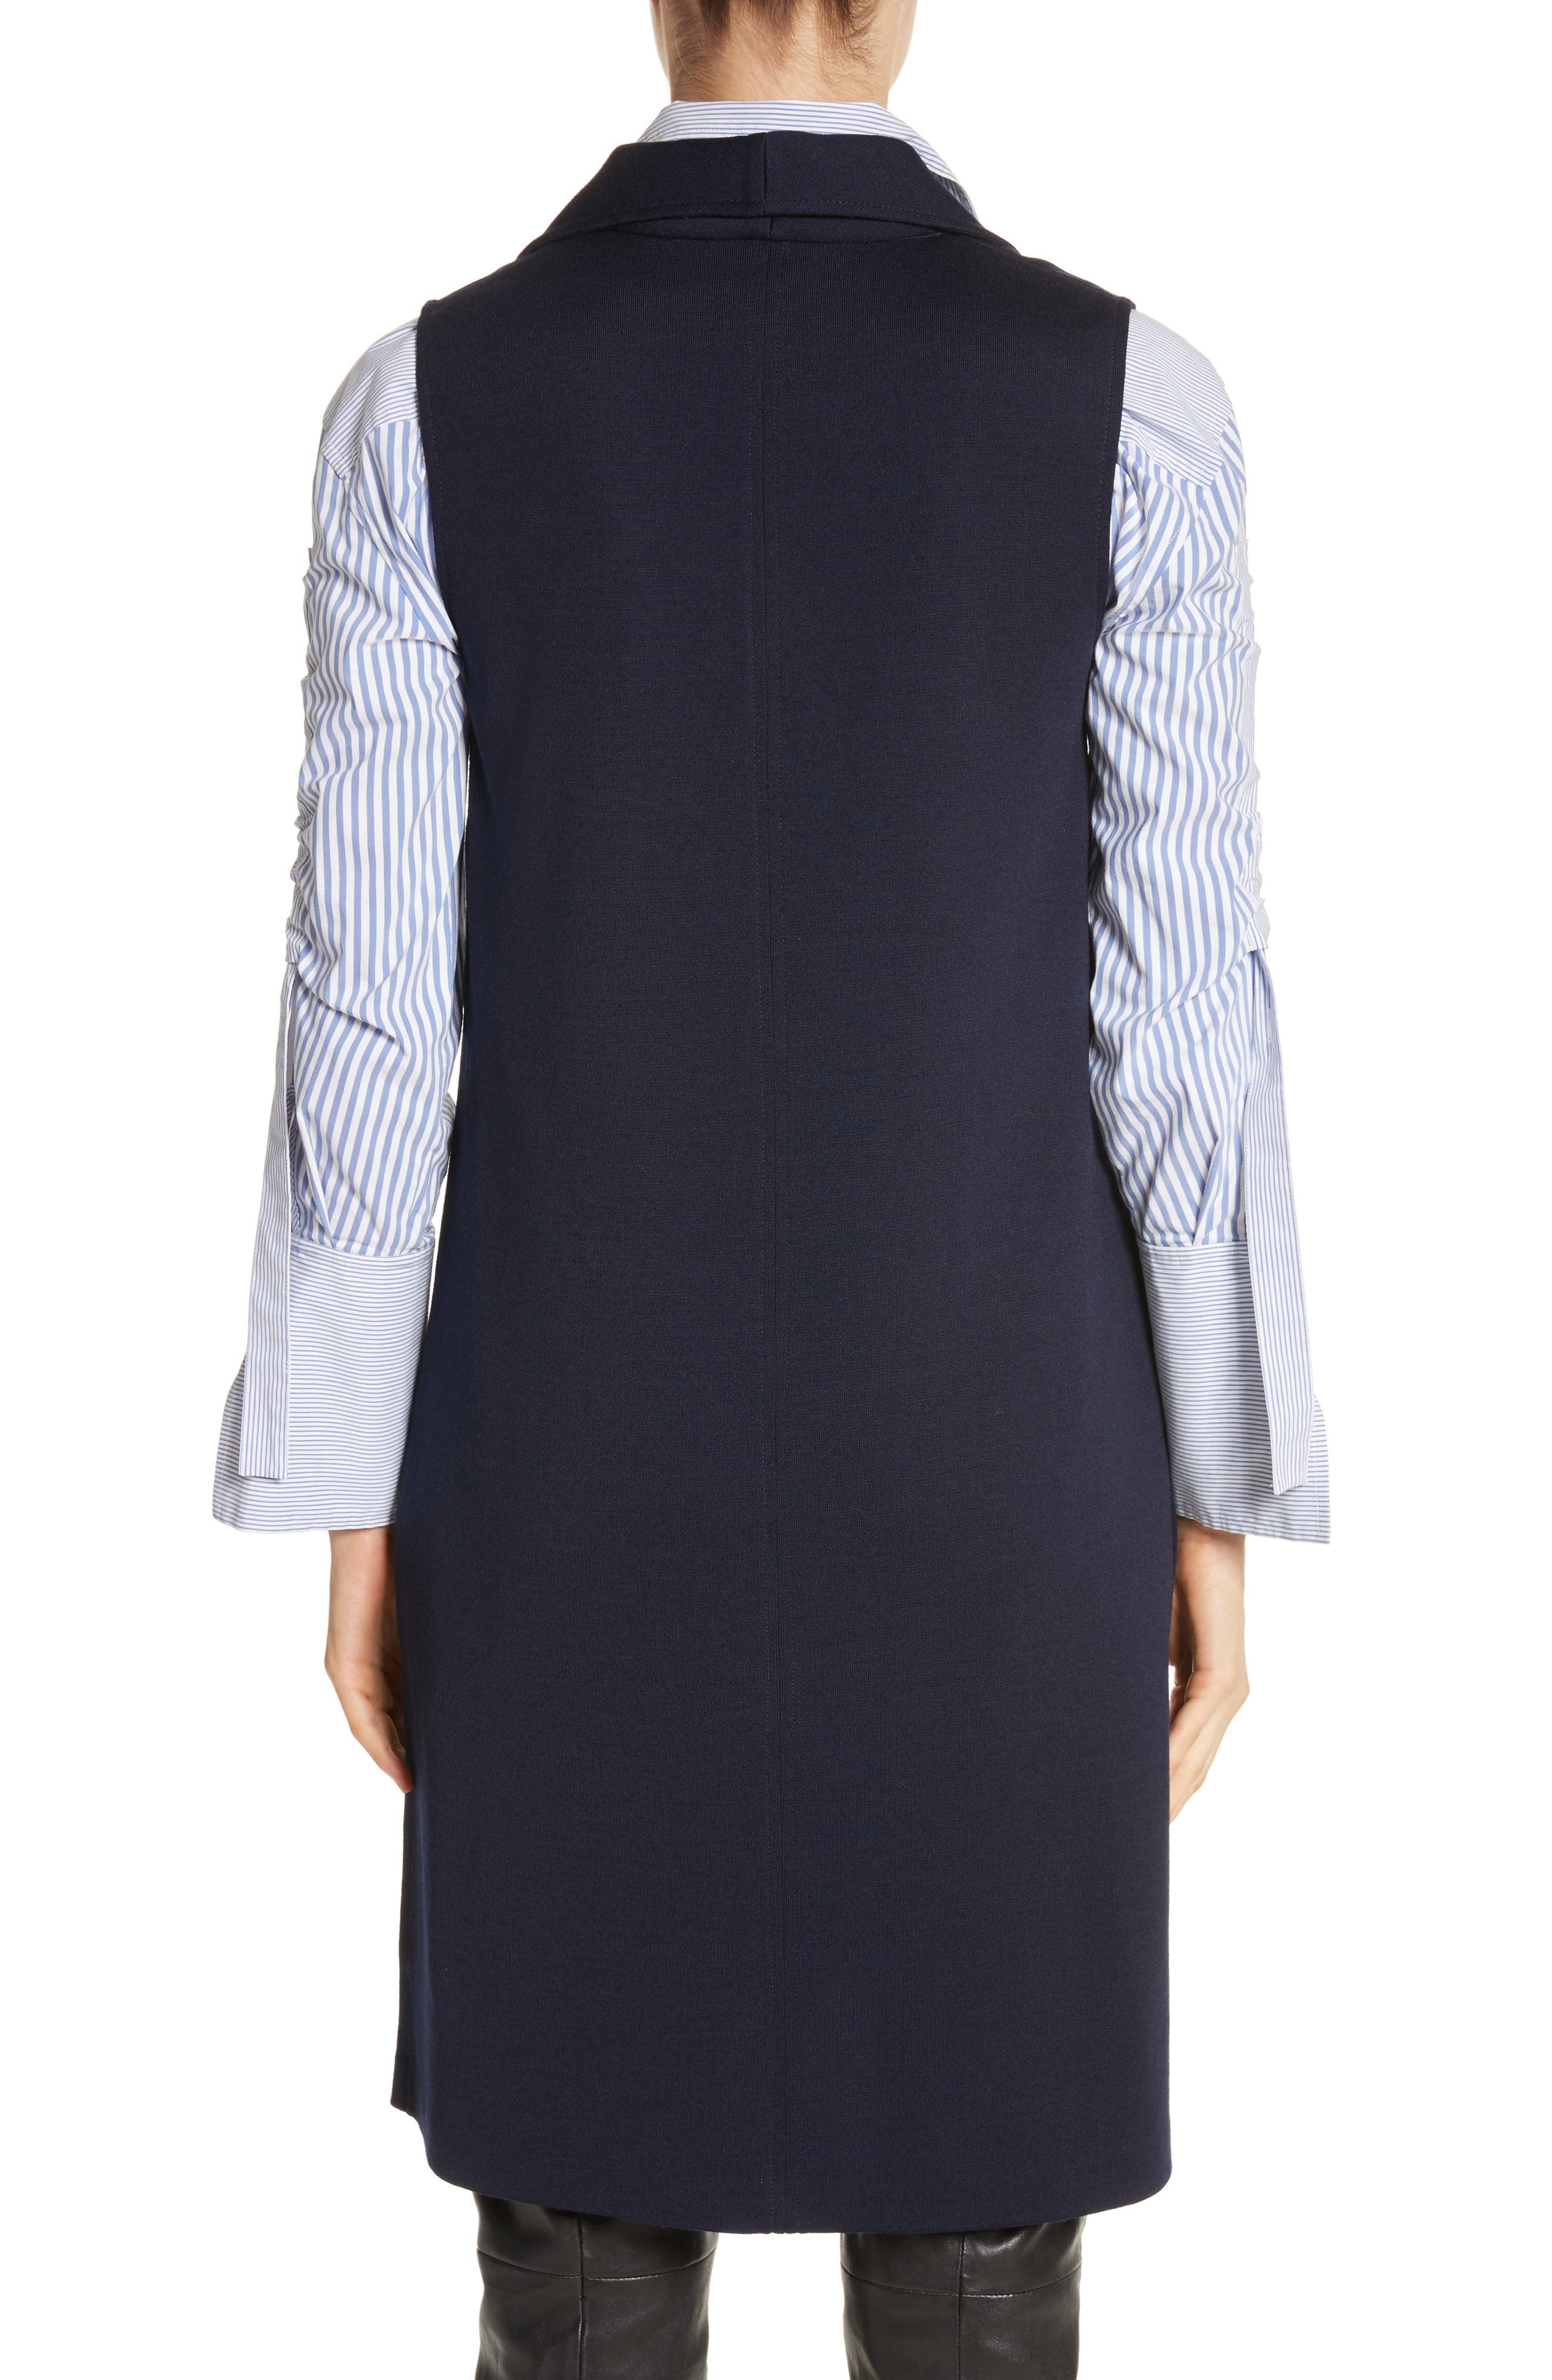 St John Collection Milano Knit Collared Tunic,                             Alternate thumbnail 2, color,                             410